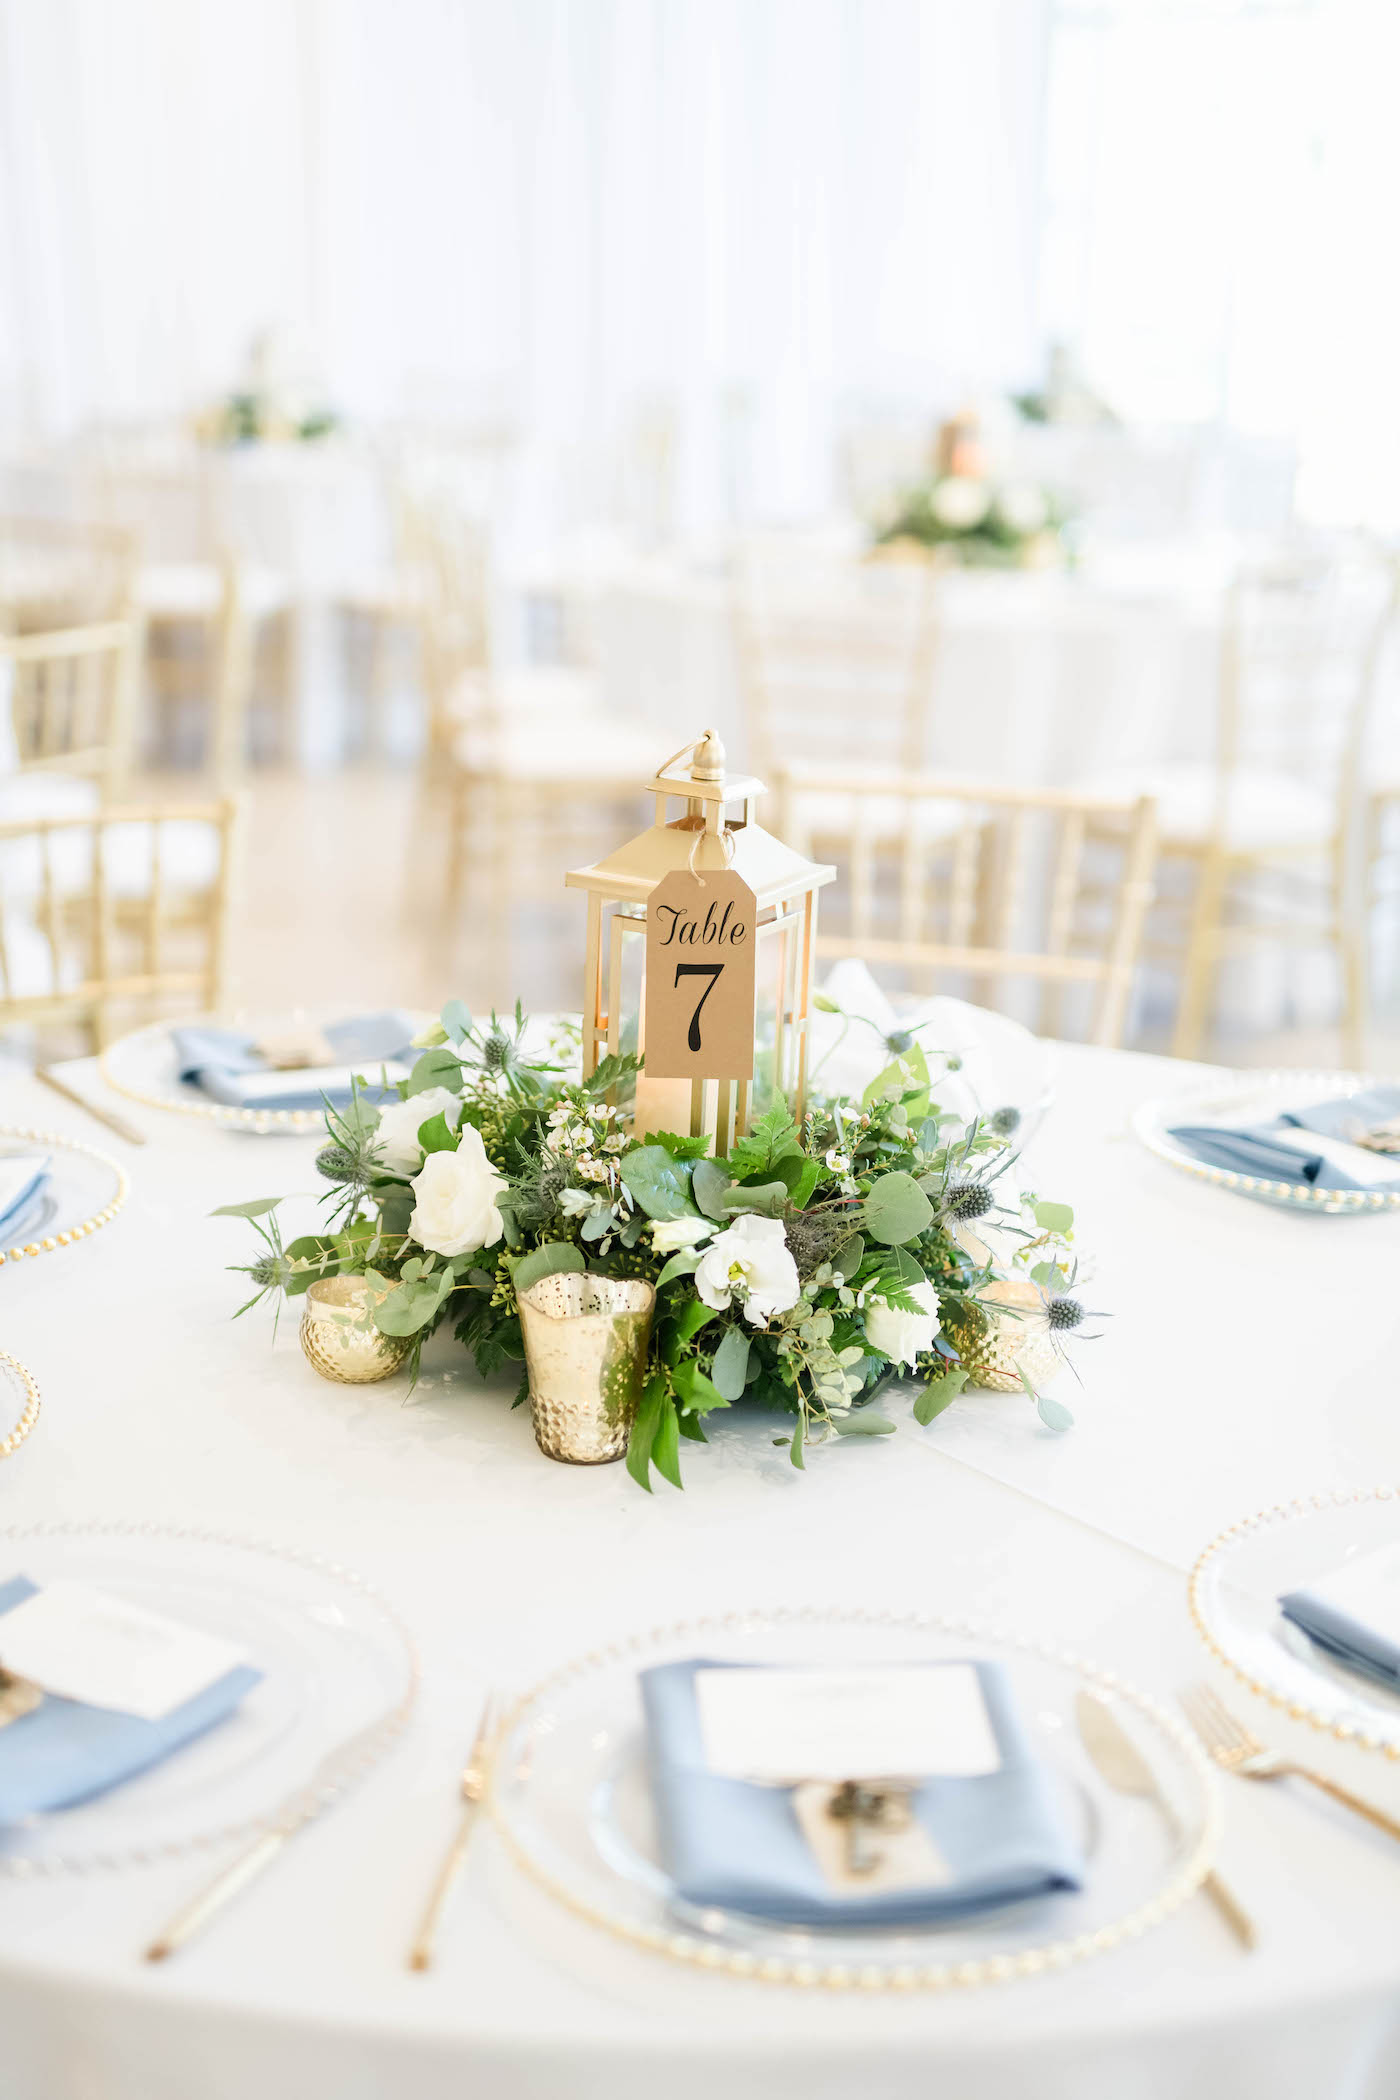 Wedding Centerpiece with Lantern and Greenery with Gold Votive Candles and Kraft Paper Table Number Tag   Dusty Blue and White and Gold Wedding